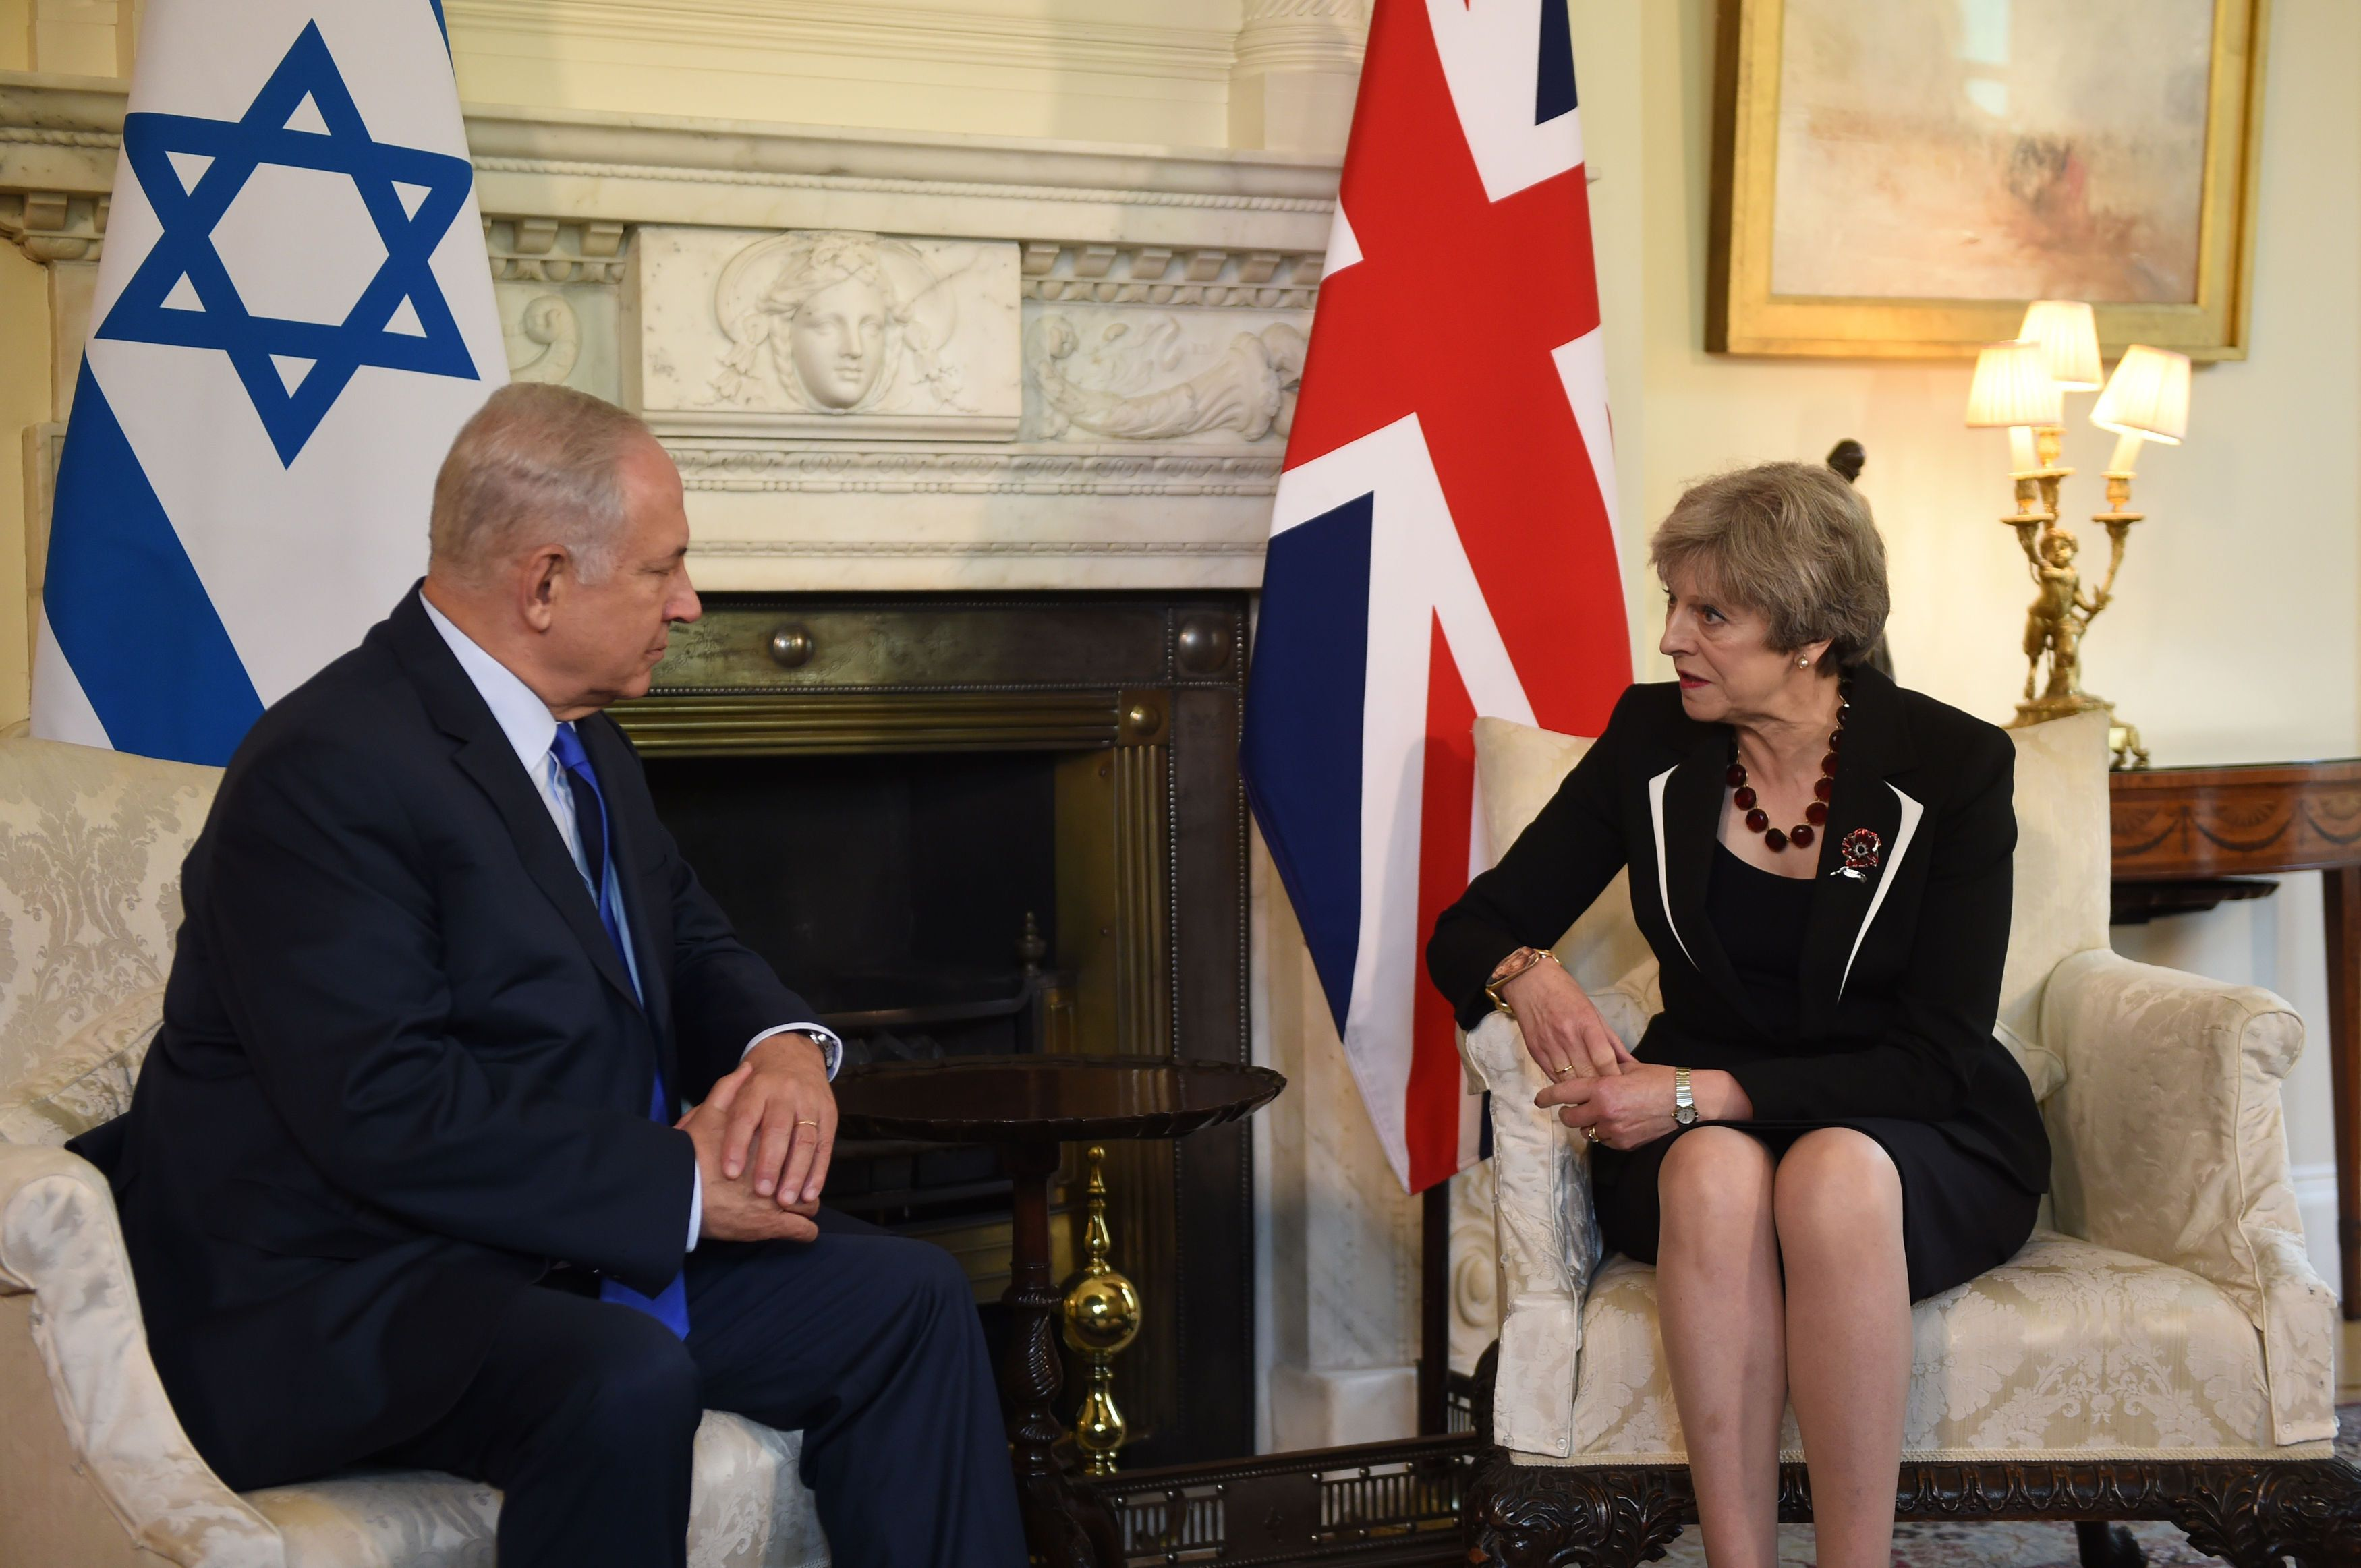 <i>Theresa May did not know that Priti Patel had meetings with the Israeli Prime Minister when she met with him in London last week.</i>